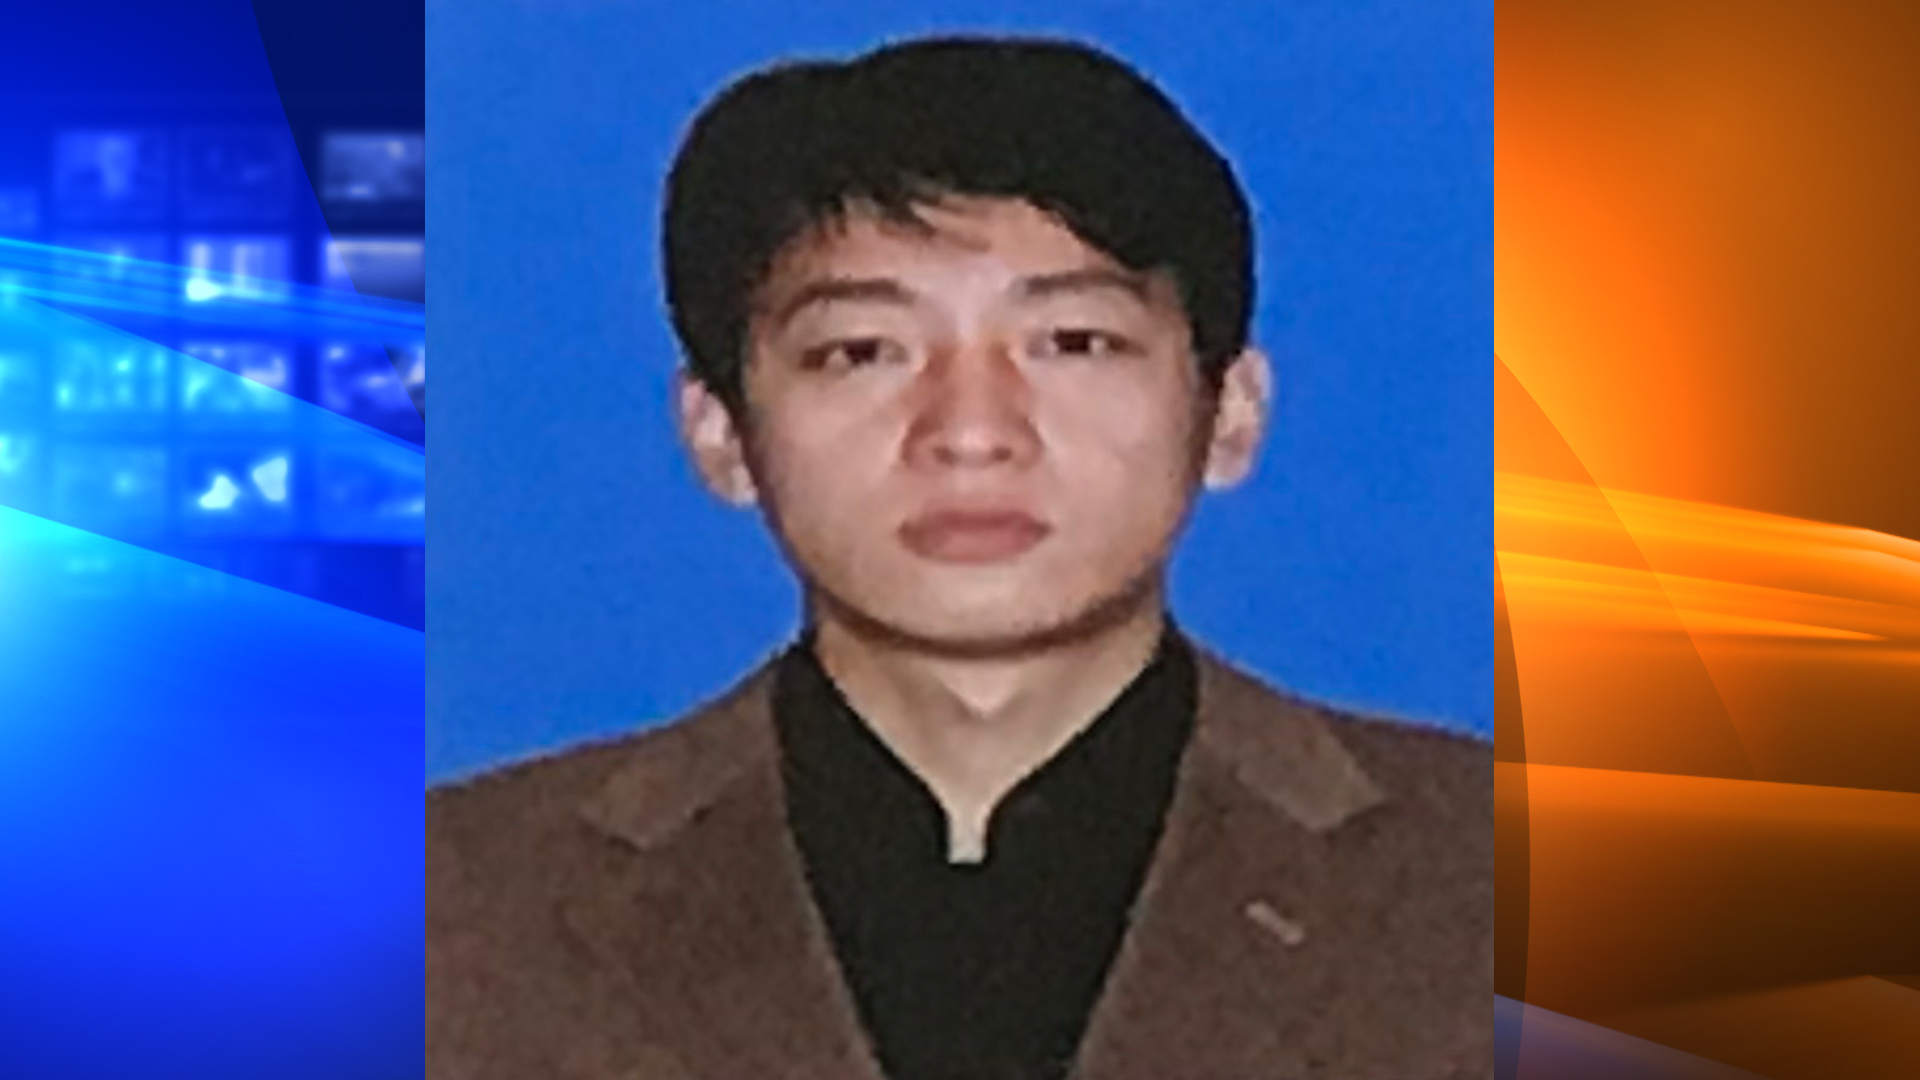 Park Jin Hyok is shown in a photo released by the Department of Justice on Sept. 6, 2018.